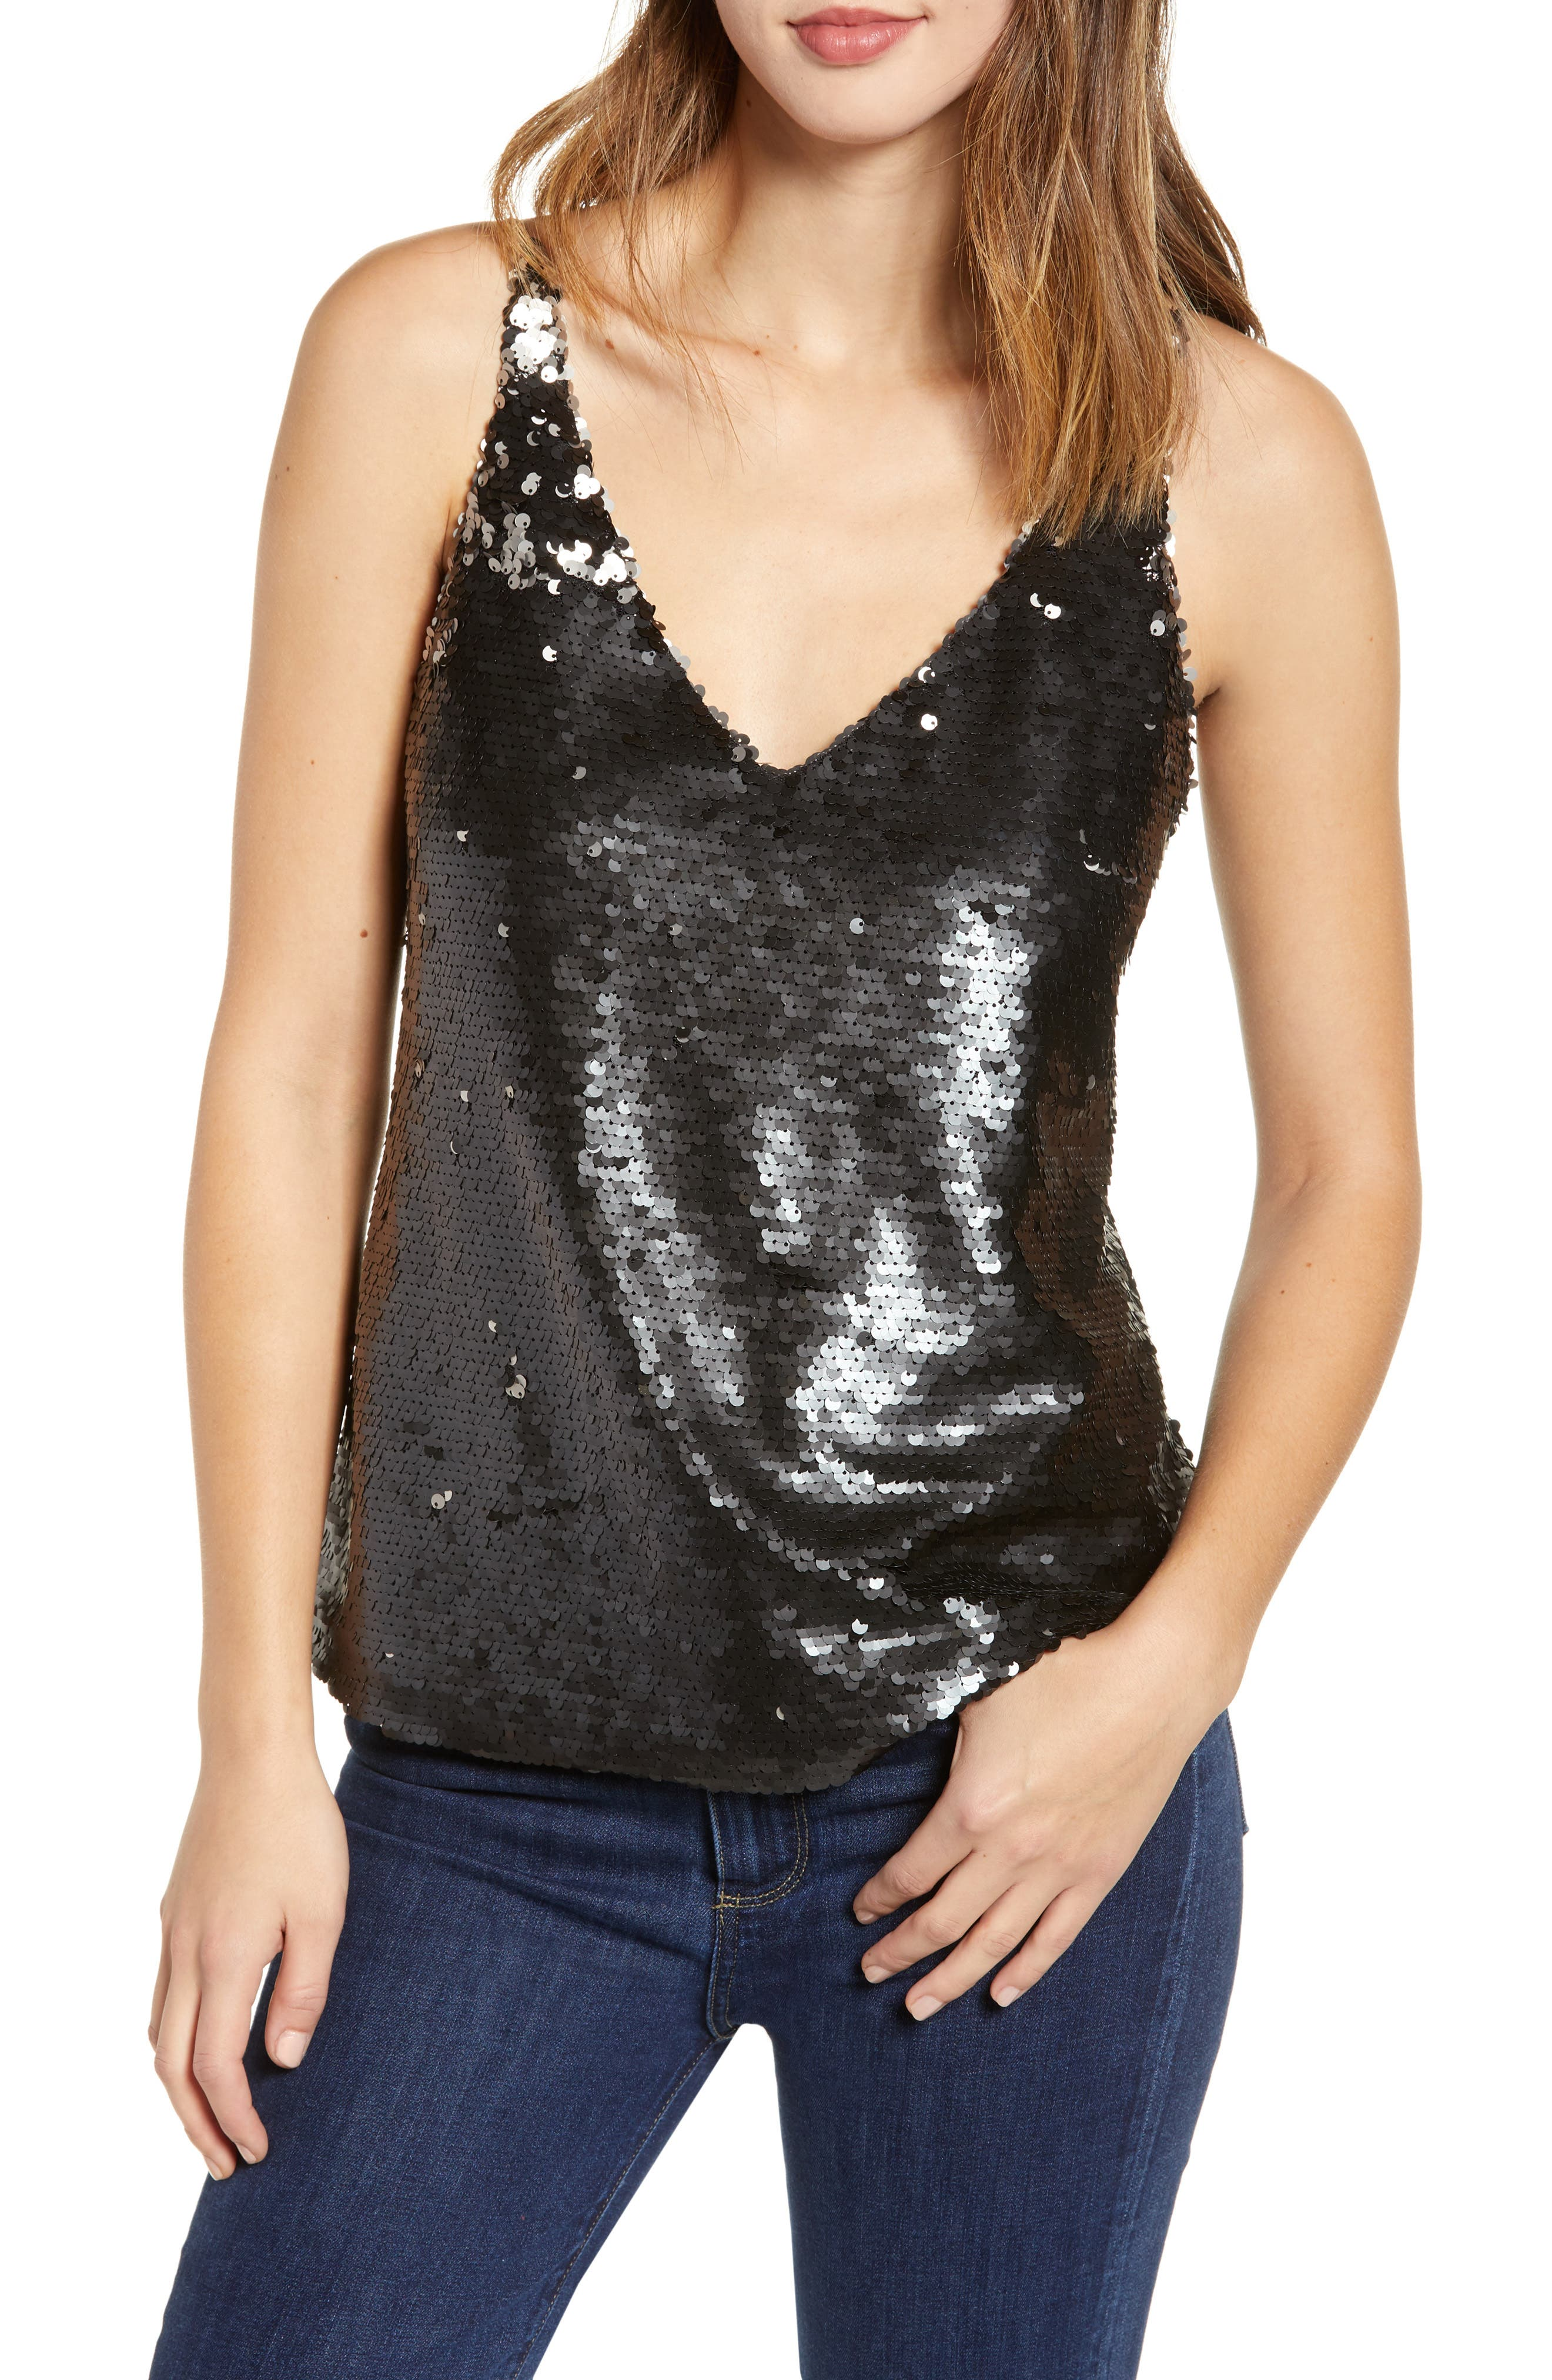 Lucy Sequined Camisole Top in Black/ Future